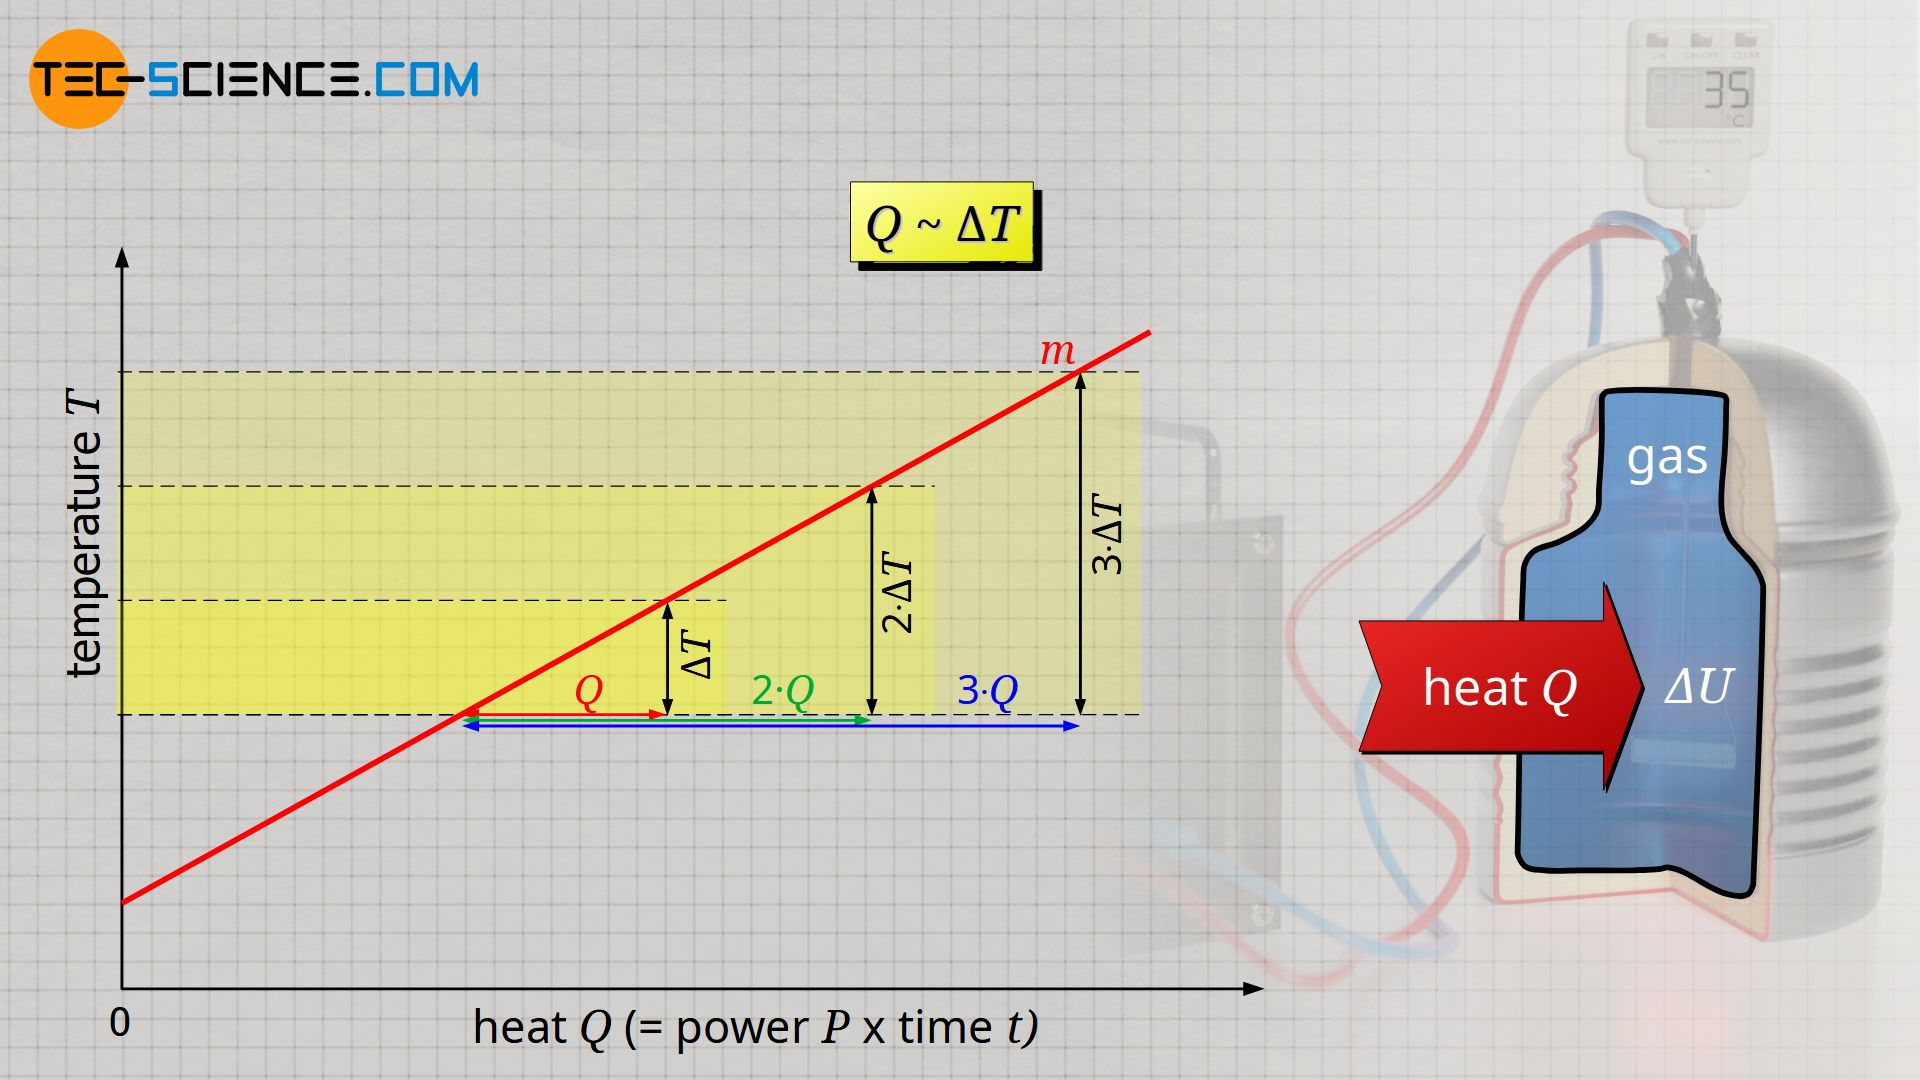 Proportionality between heat and temperature change at constant mass